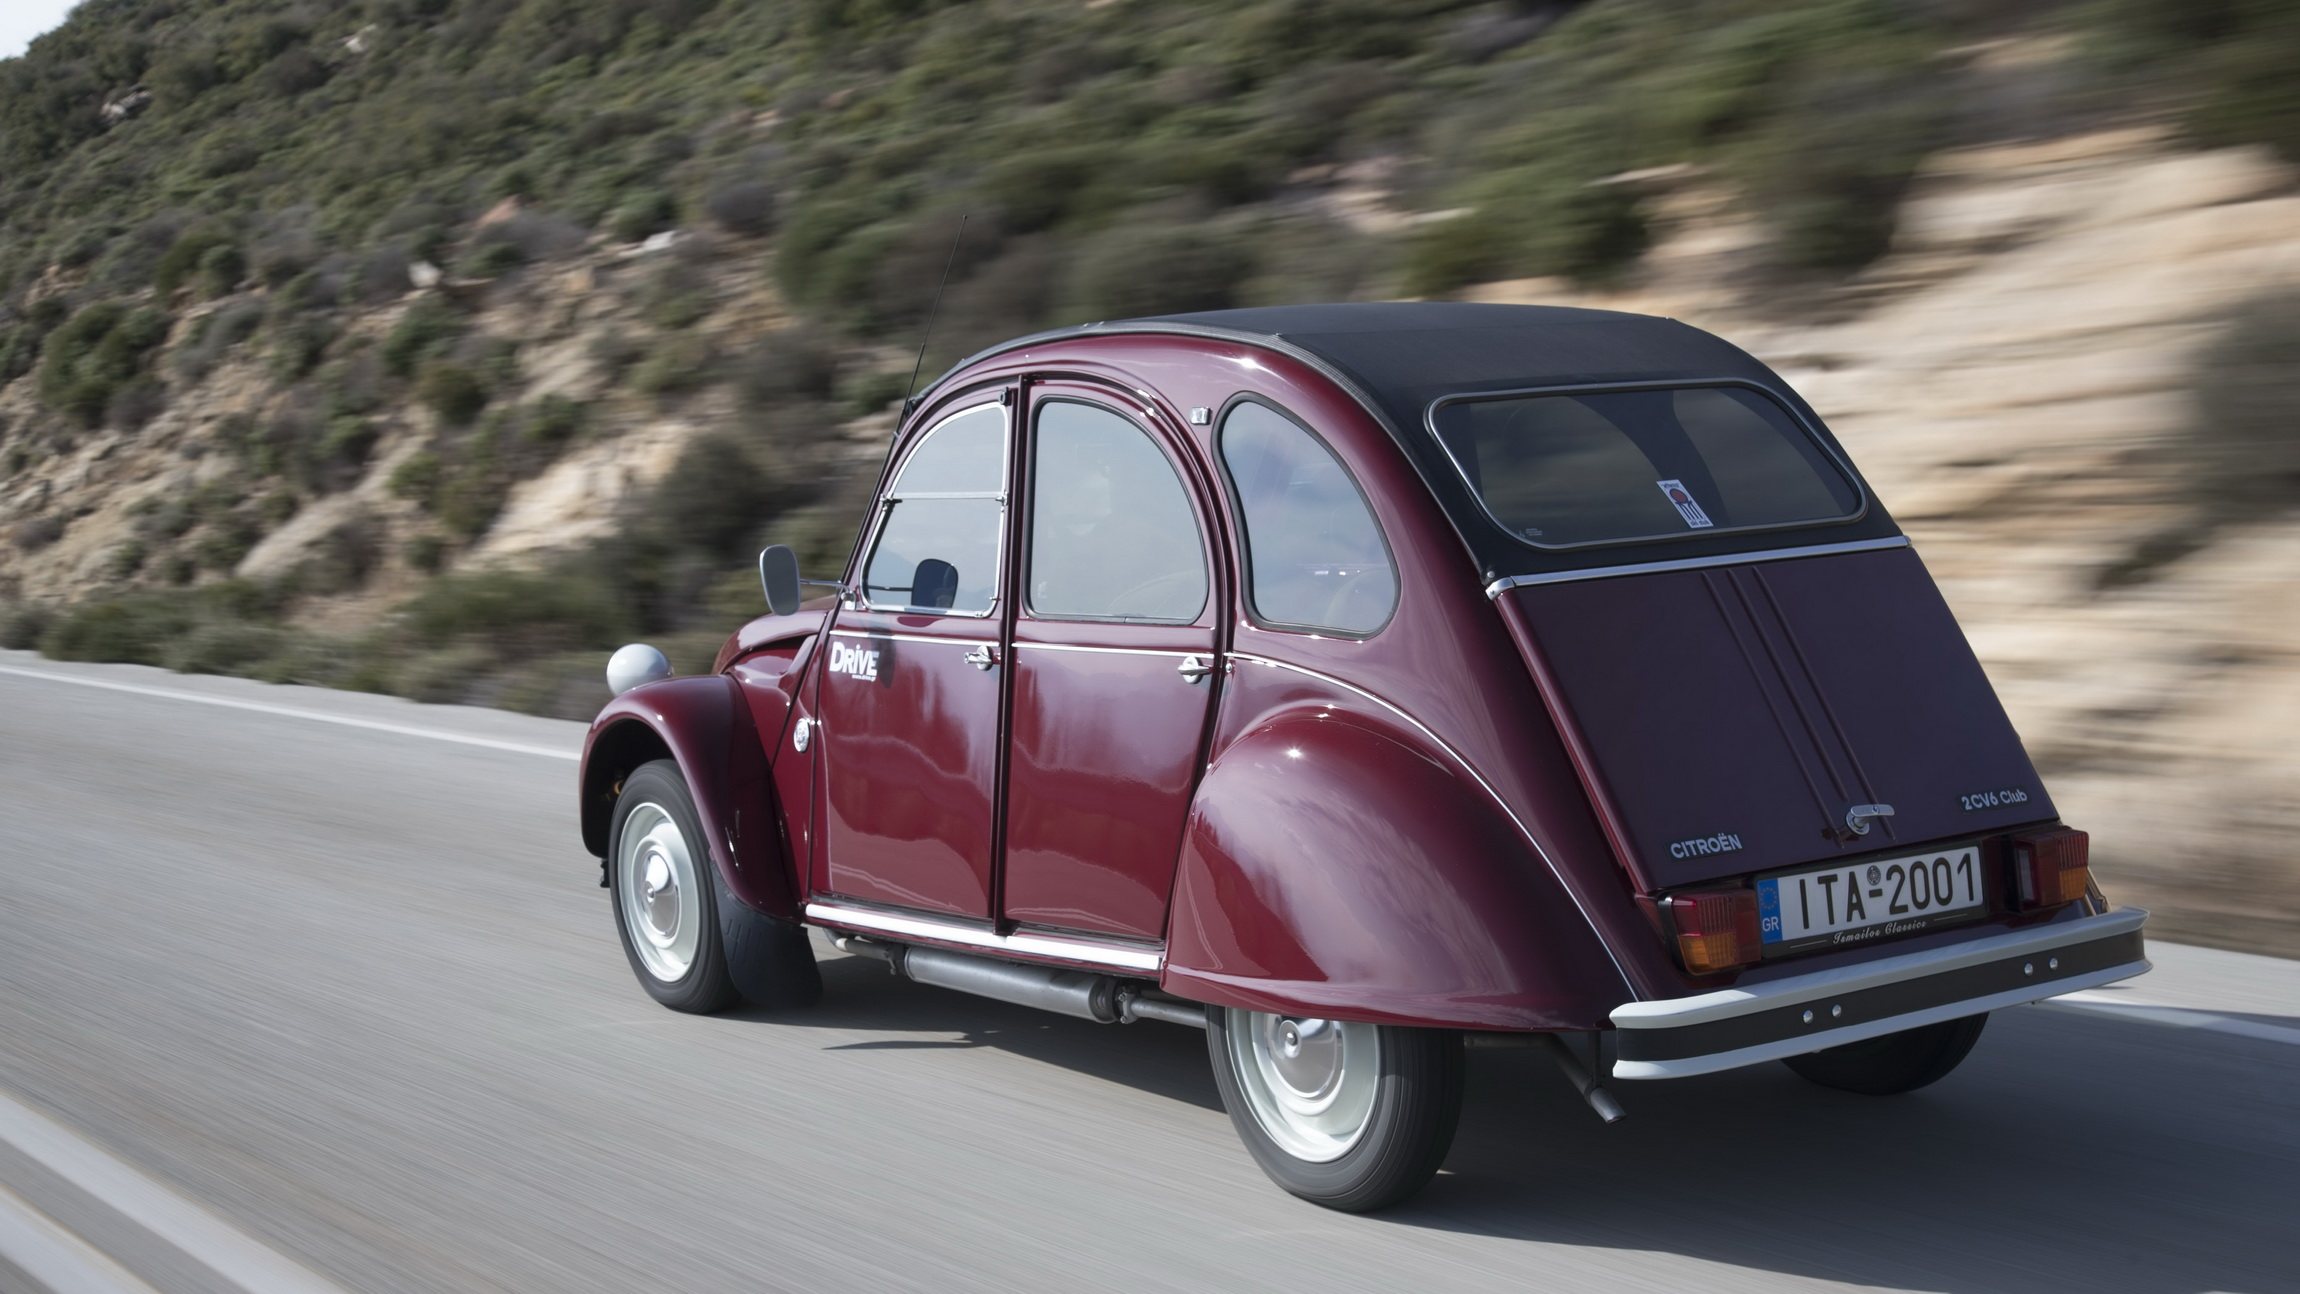 Citroën 2CV6 Club 1984